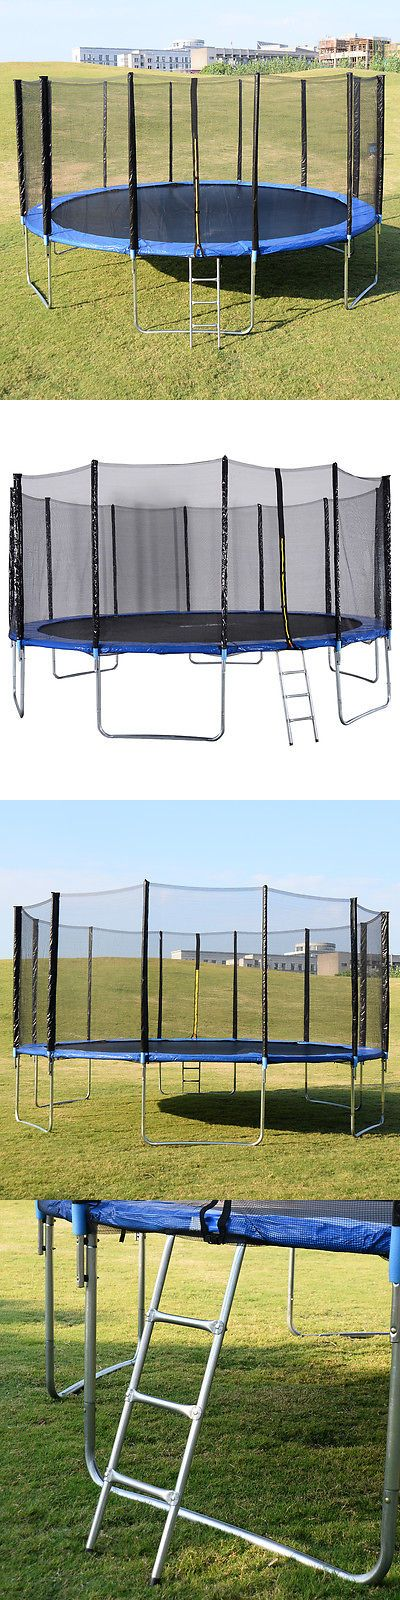 Trampolines 145999: New 16Ft Trampoline Combo Bounce Jump Safety Enclosure Net W Spring Pad Ladder -> BUY IT NOW ONLY: $335.99 on eBay!